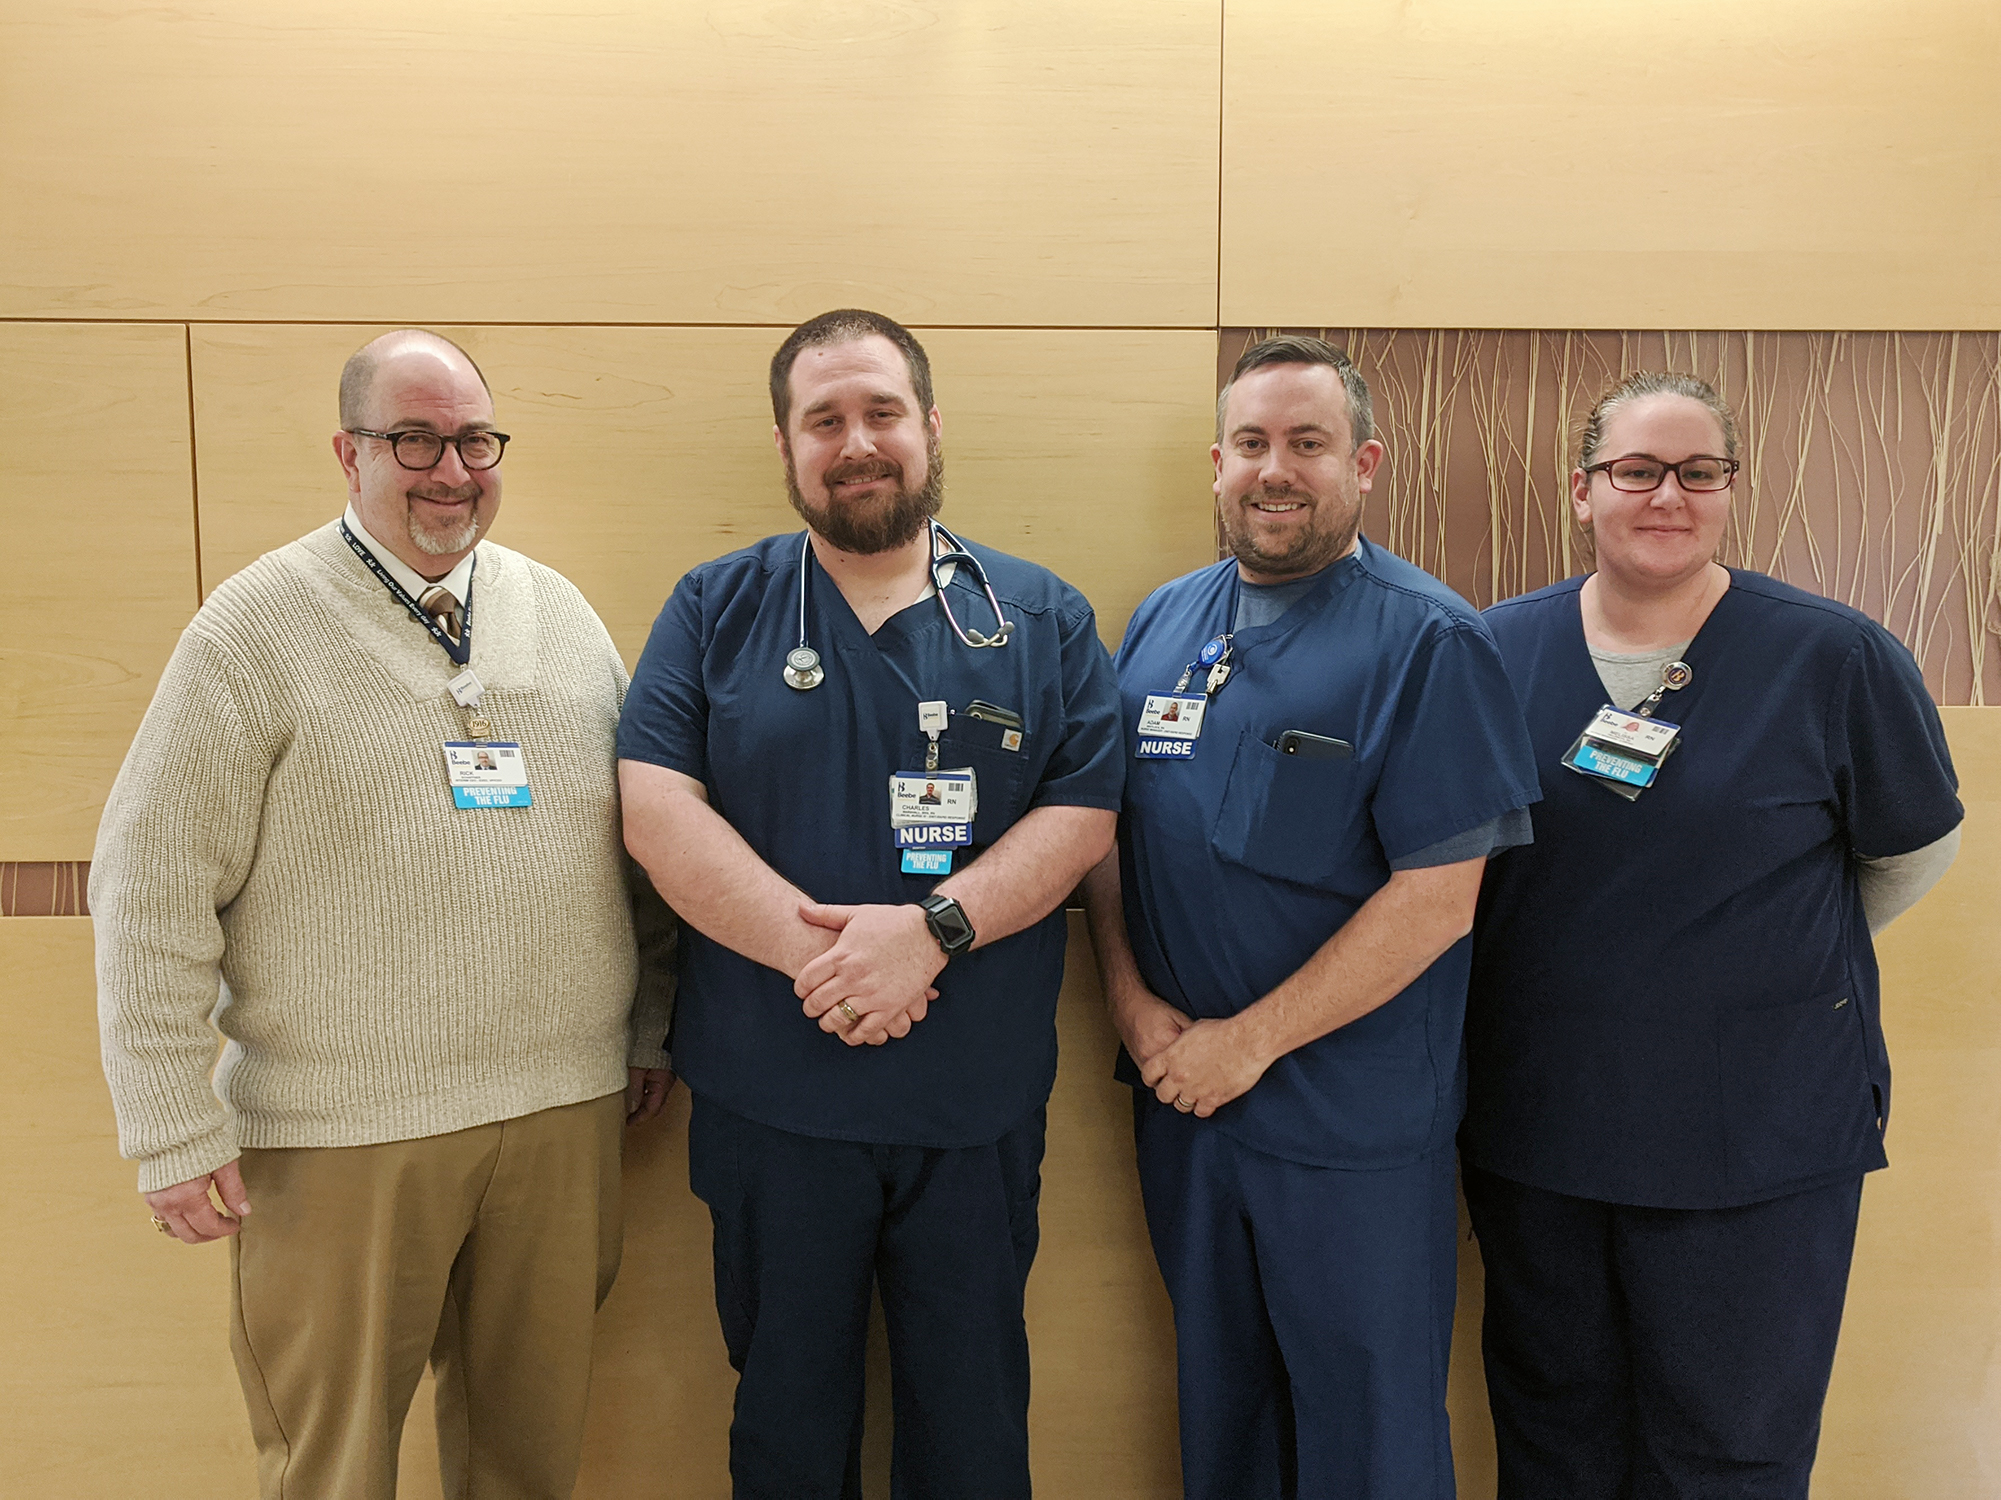 CJ Marshall (second from left), Emergency Department Clinical Team Leader at Beebe Healthcare, is the recipient of Beebe's January L.O.V.E. Letter. Also pictured from left to right are Rick Schaffner, Interim CEO, Executive Vice President, Chief Operating